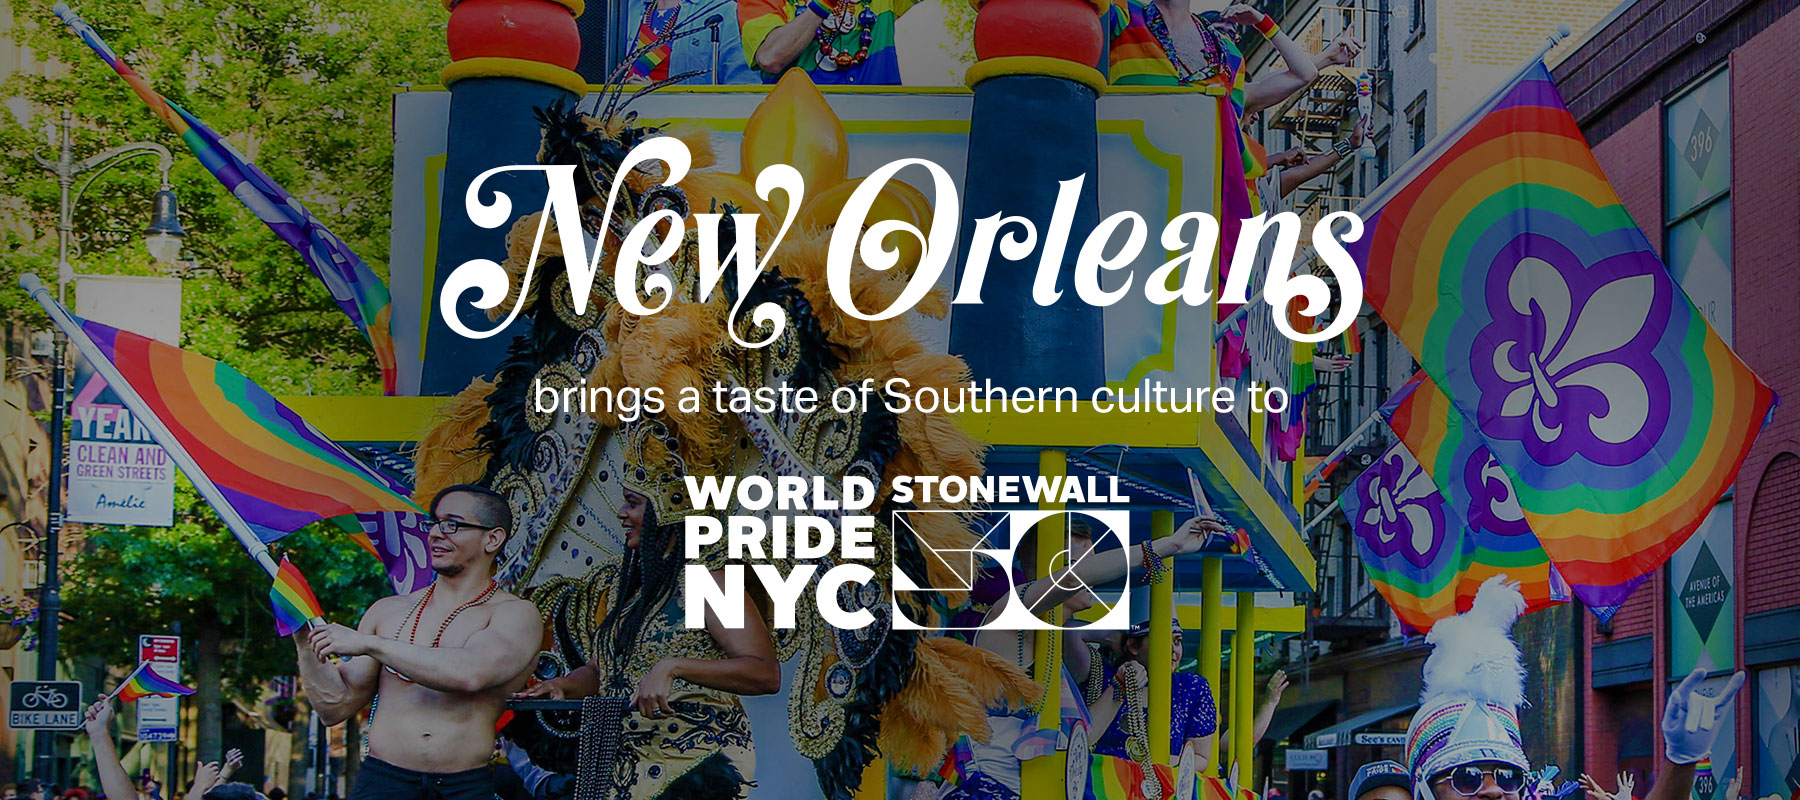 New Orleans brings a taste of Southern culture to World Pride NYC